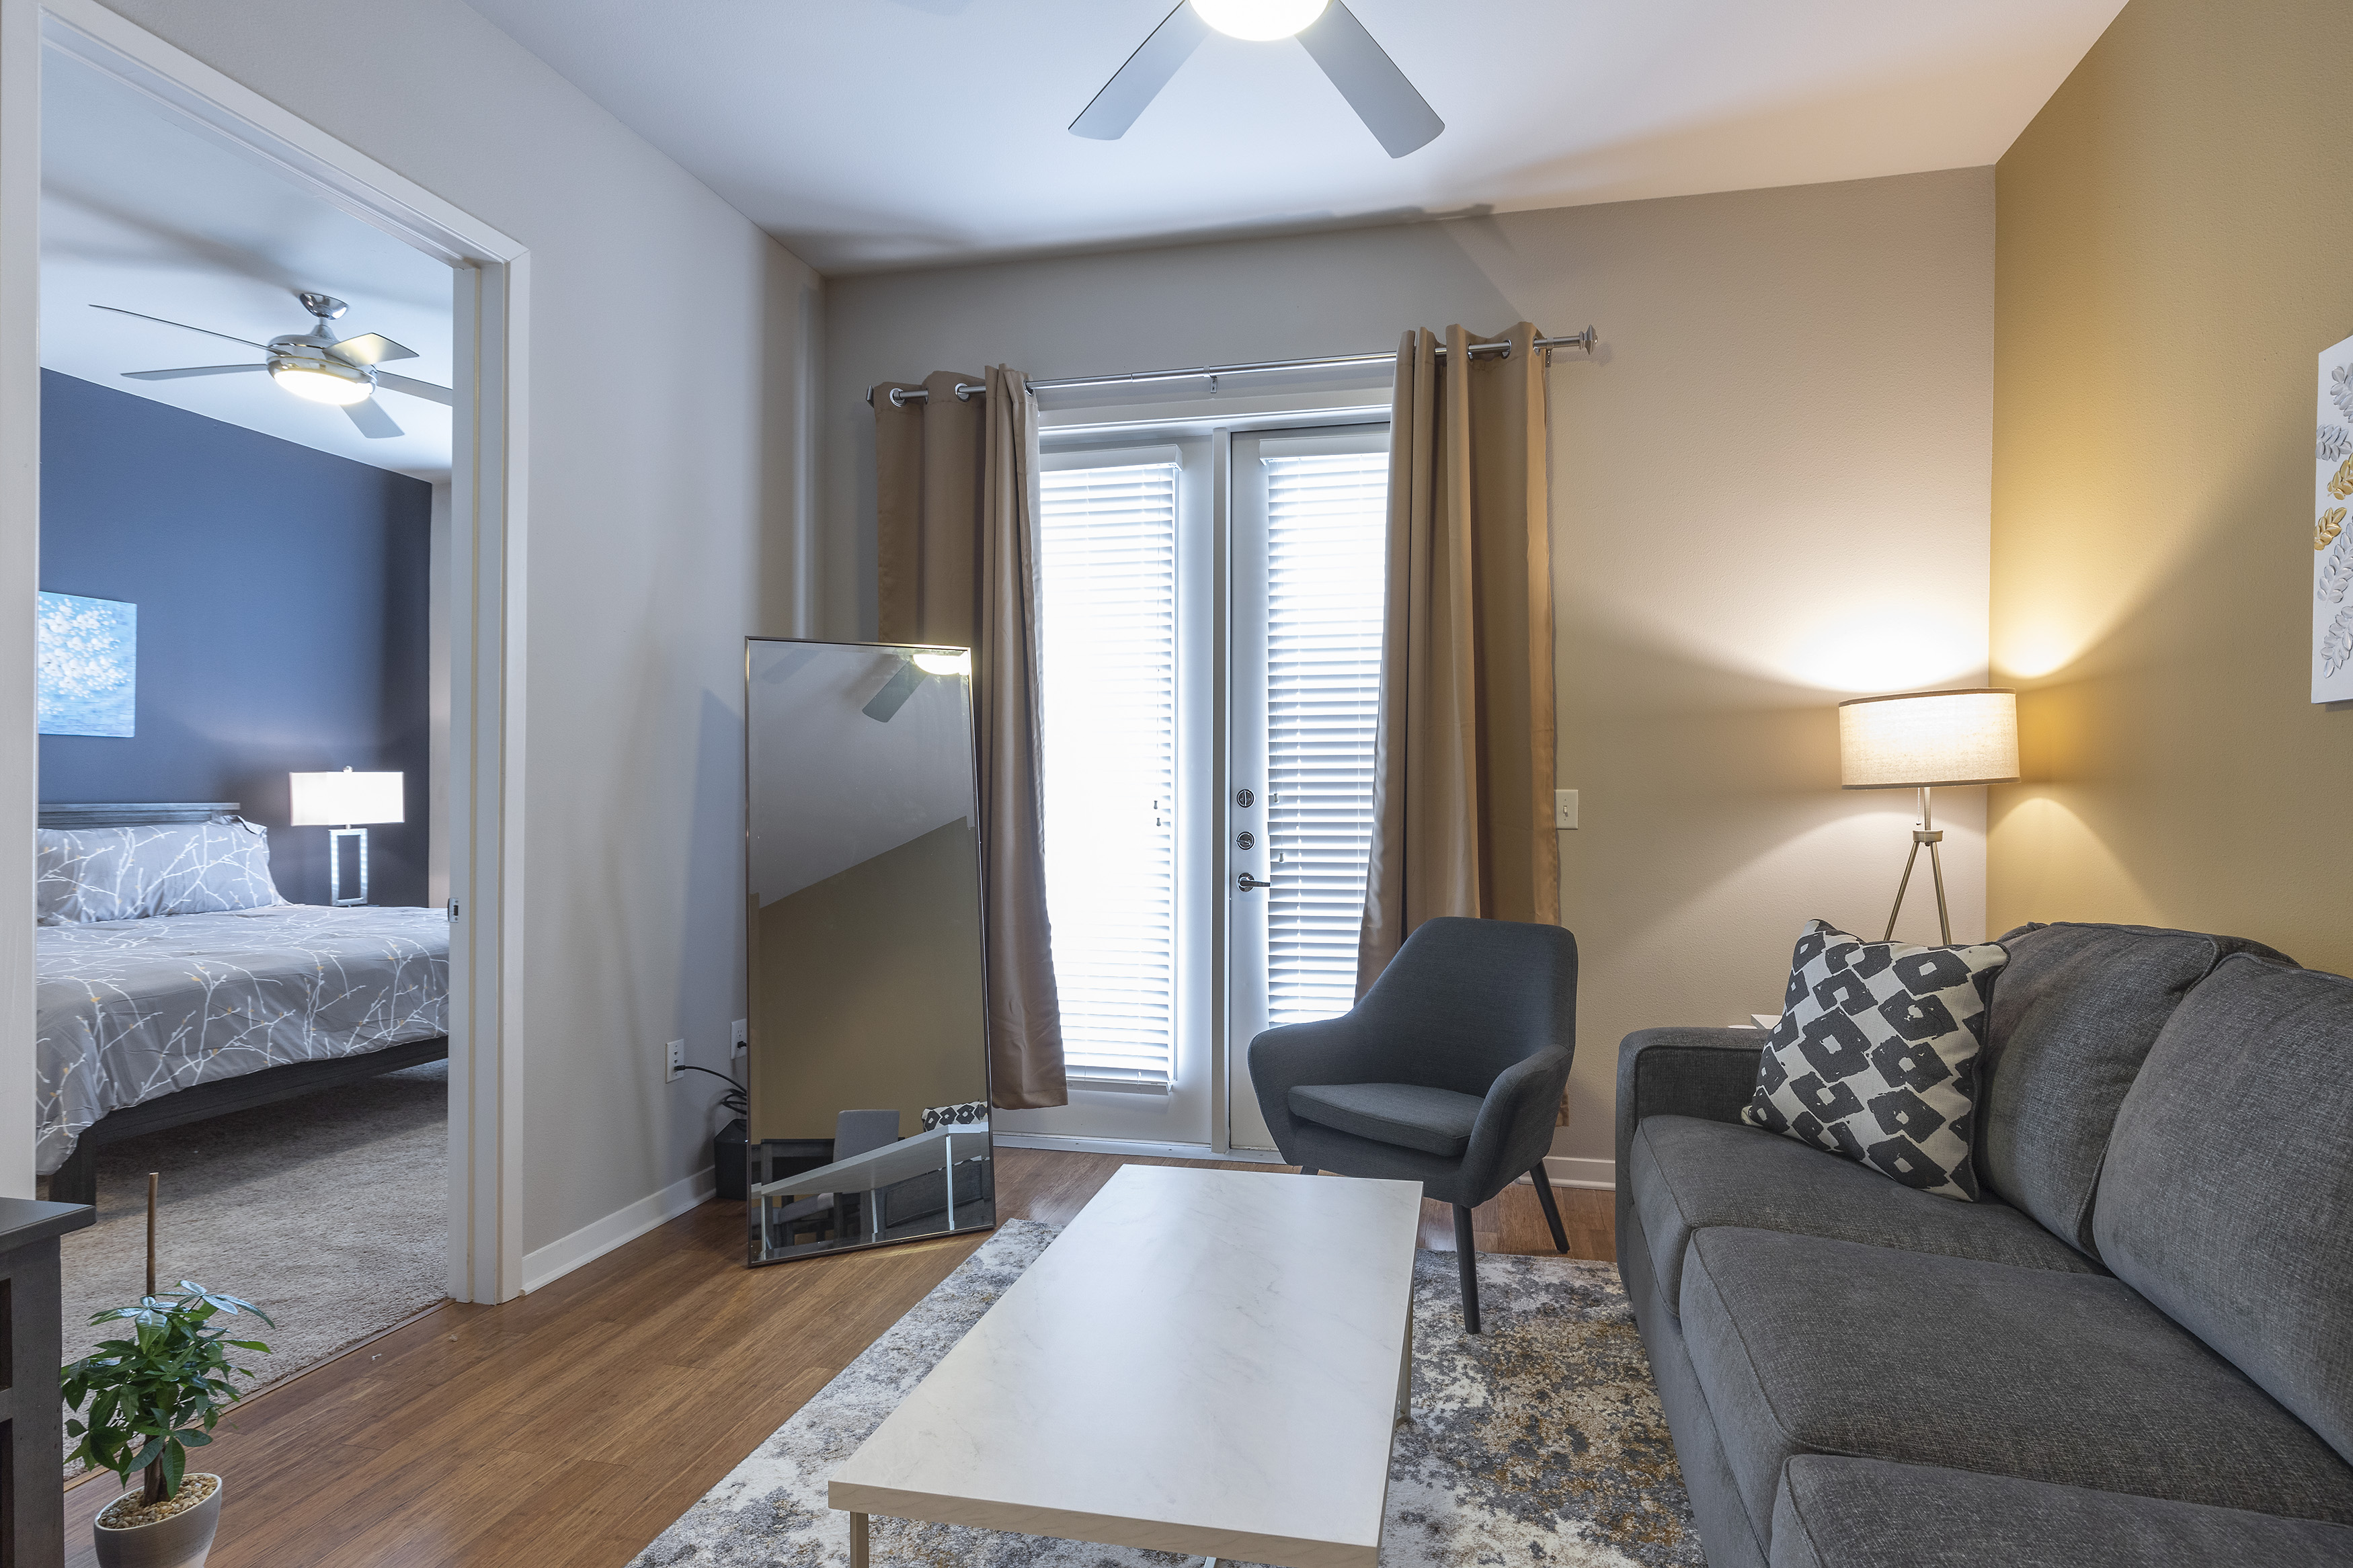 LUXURIOUS - KING SIZED BED - MED CENTER FULLY EQUIPPED CONDO photo 21441050